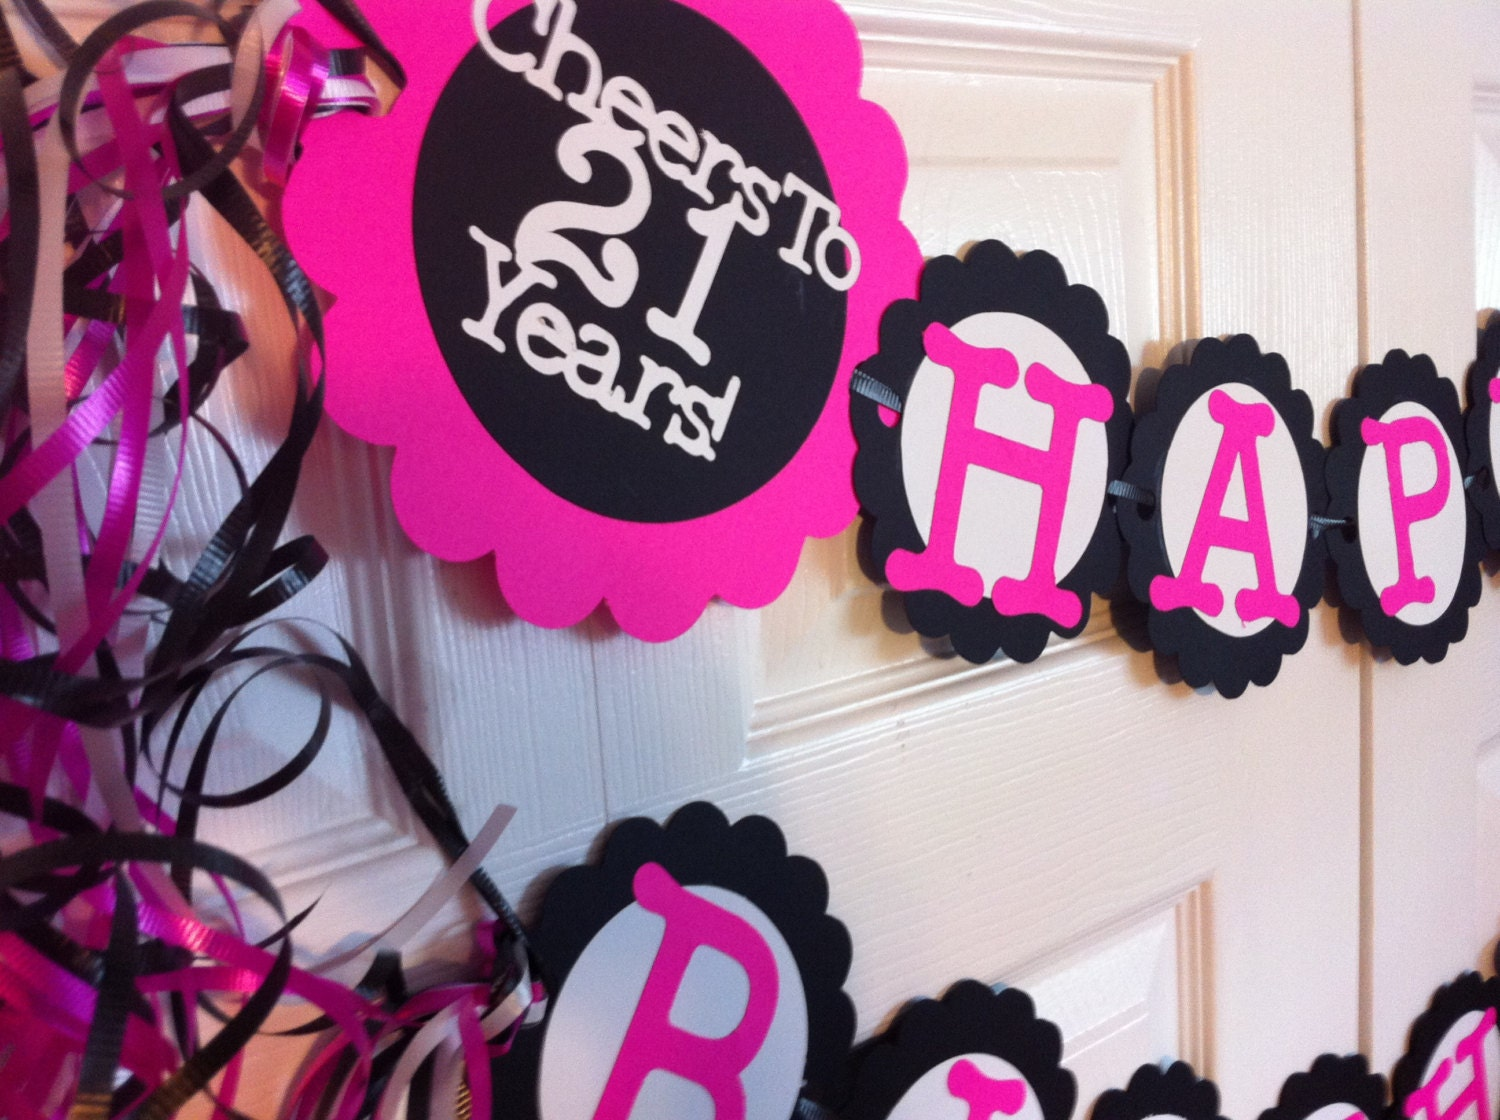 21st Birthday Party Decorations Personalization Available